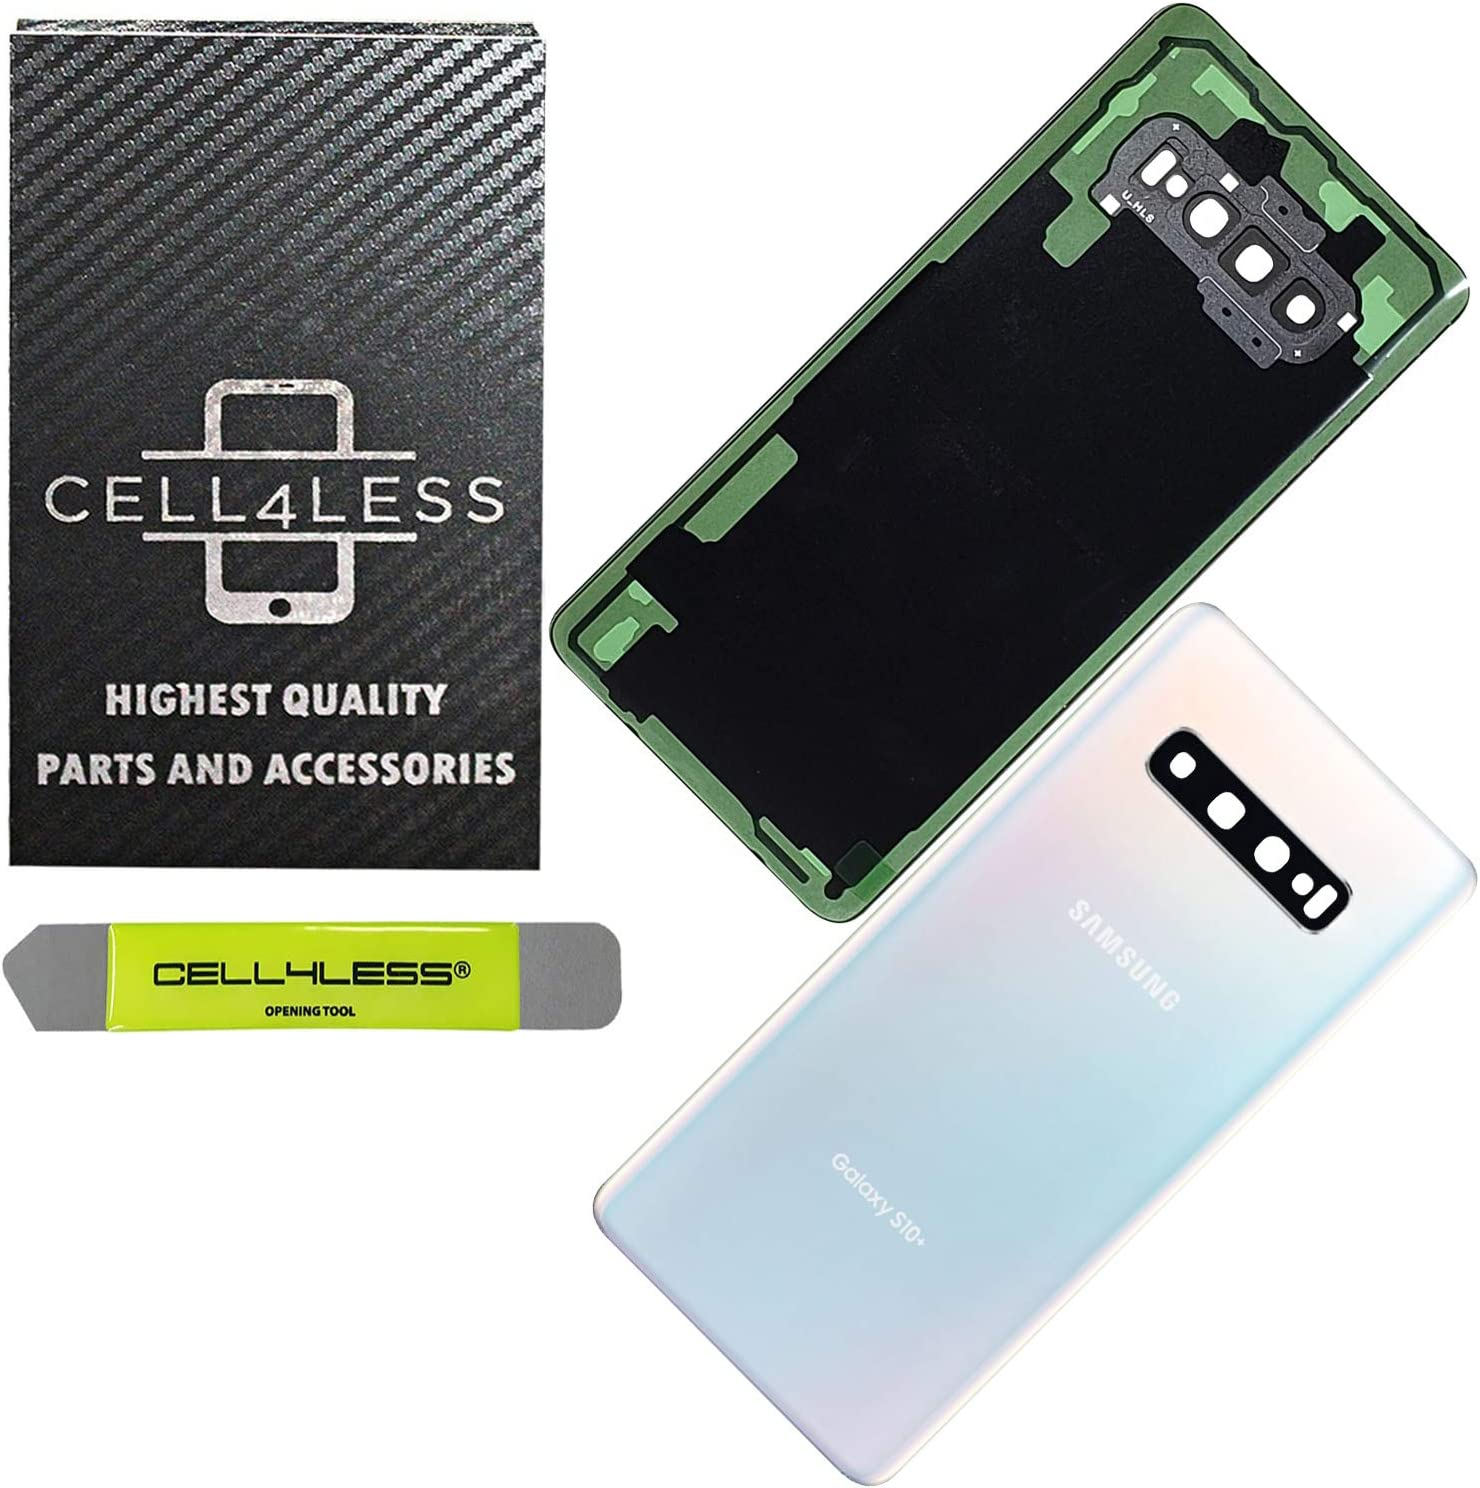 CELL4LESS Back Glass Replacement for The Galaxy S10+ Plus Model SM-G975 Including Camera Frame, Lens, Removal Tool (Prism White)